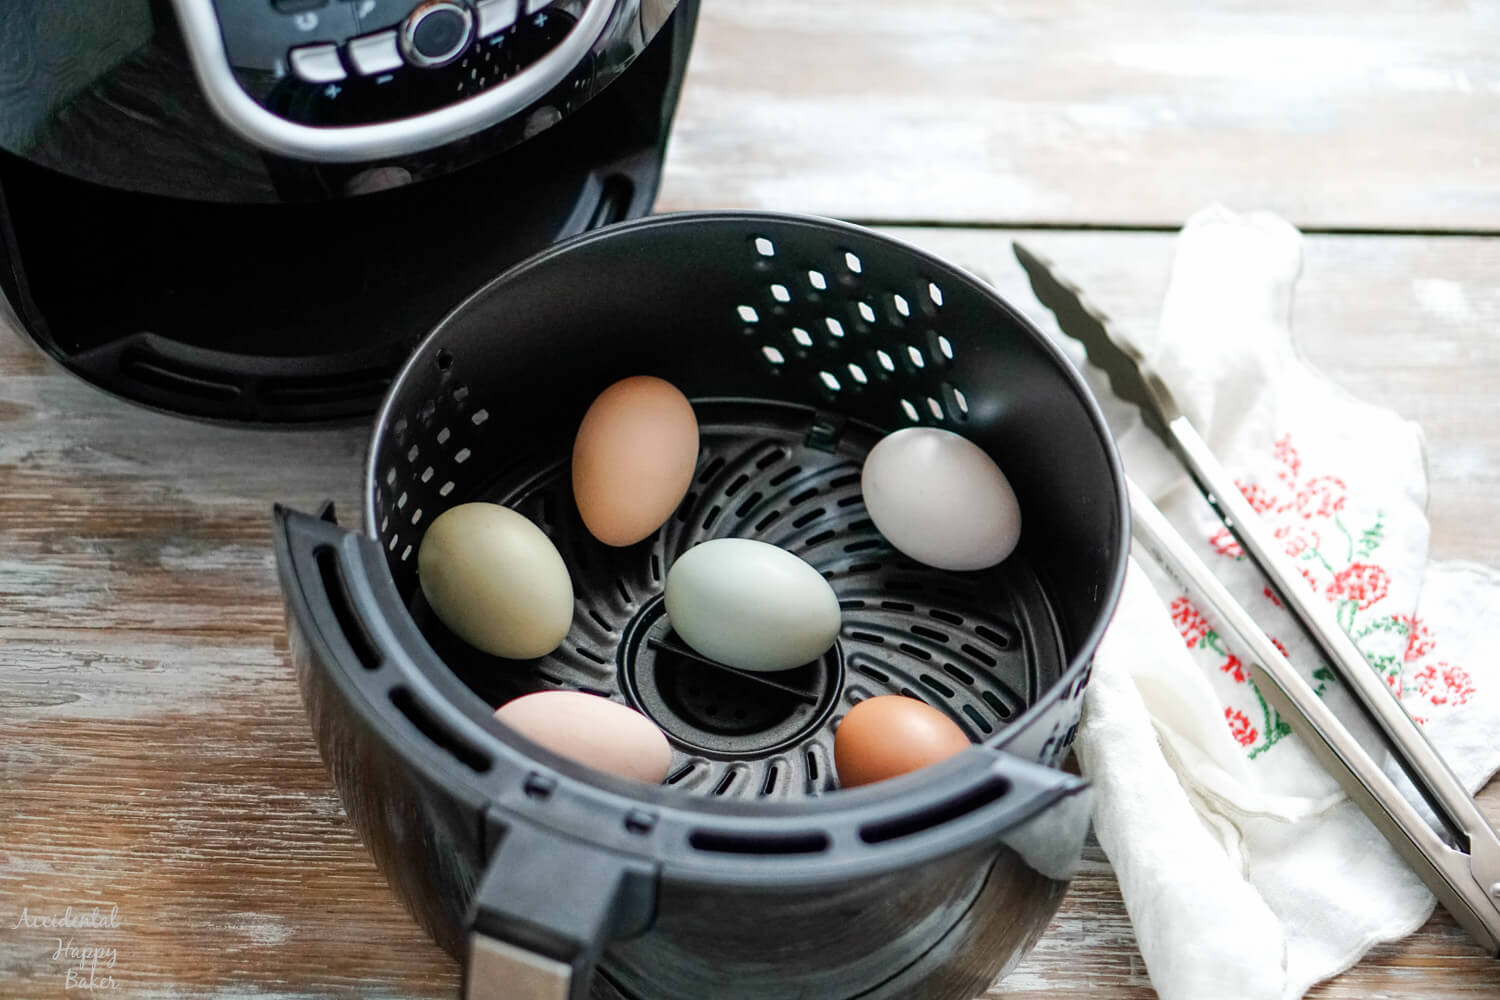 Several eggs in the basket of an air fryer.